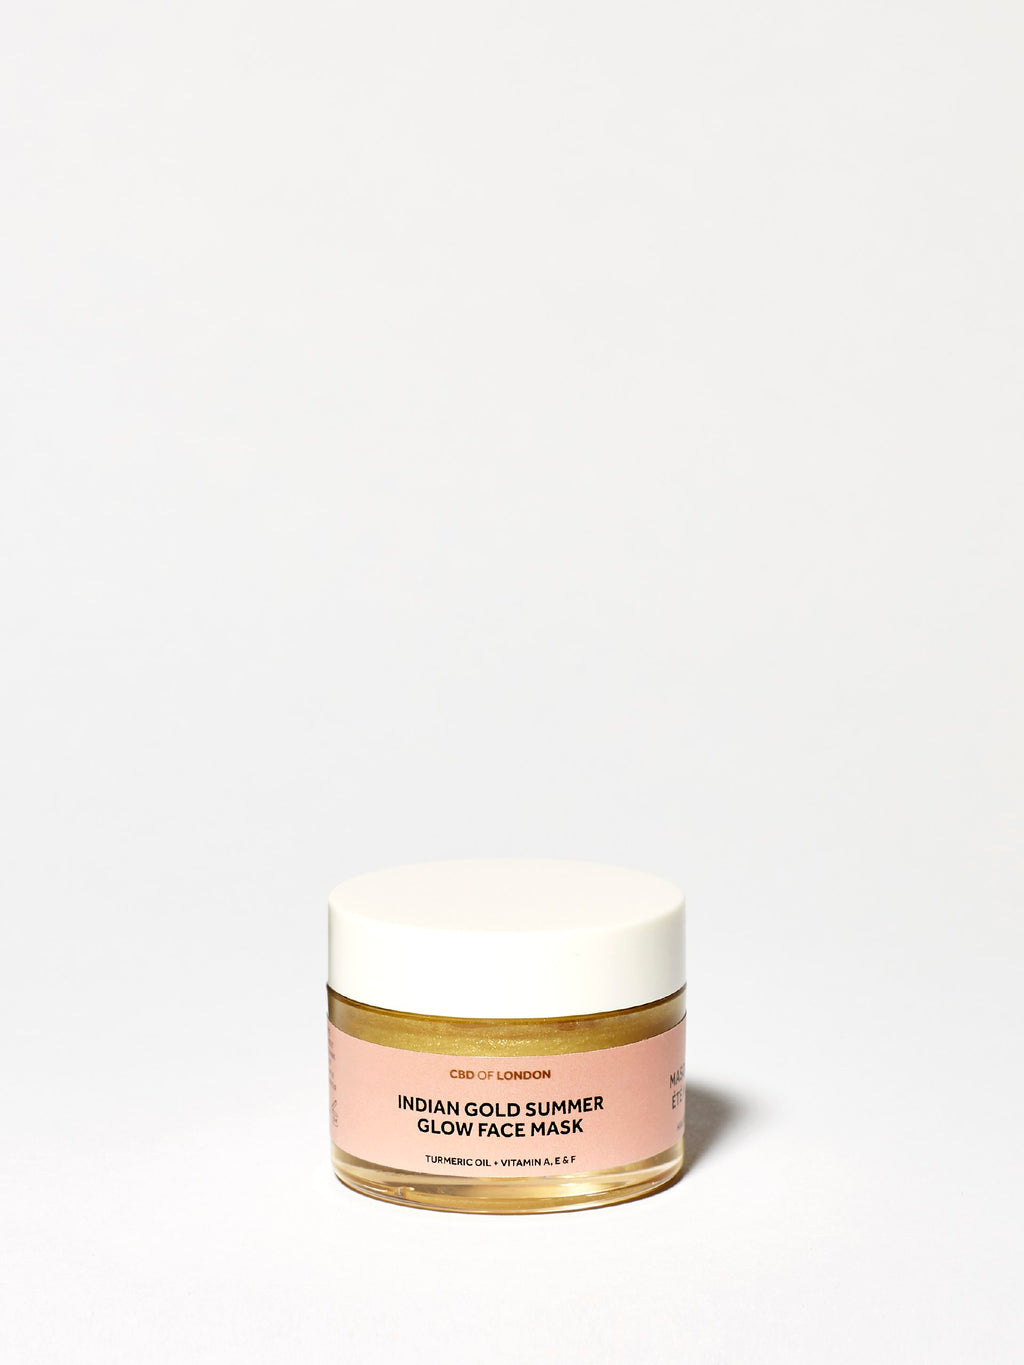 Indian Gold Summer Glow Face Mask